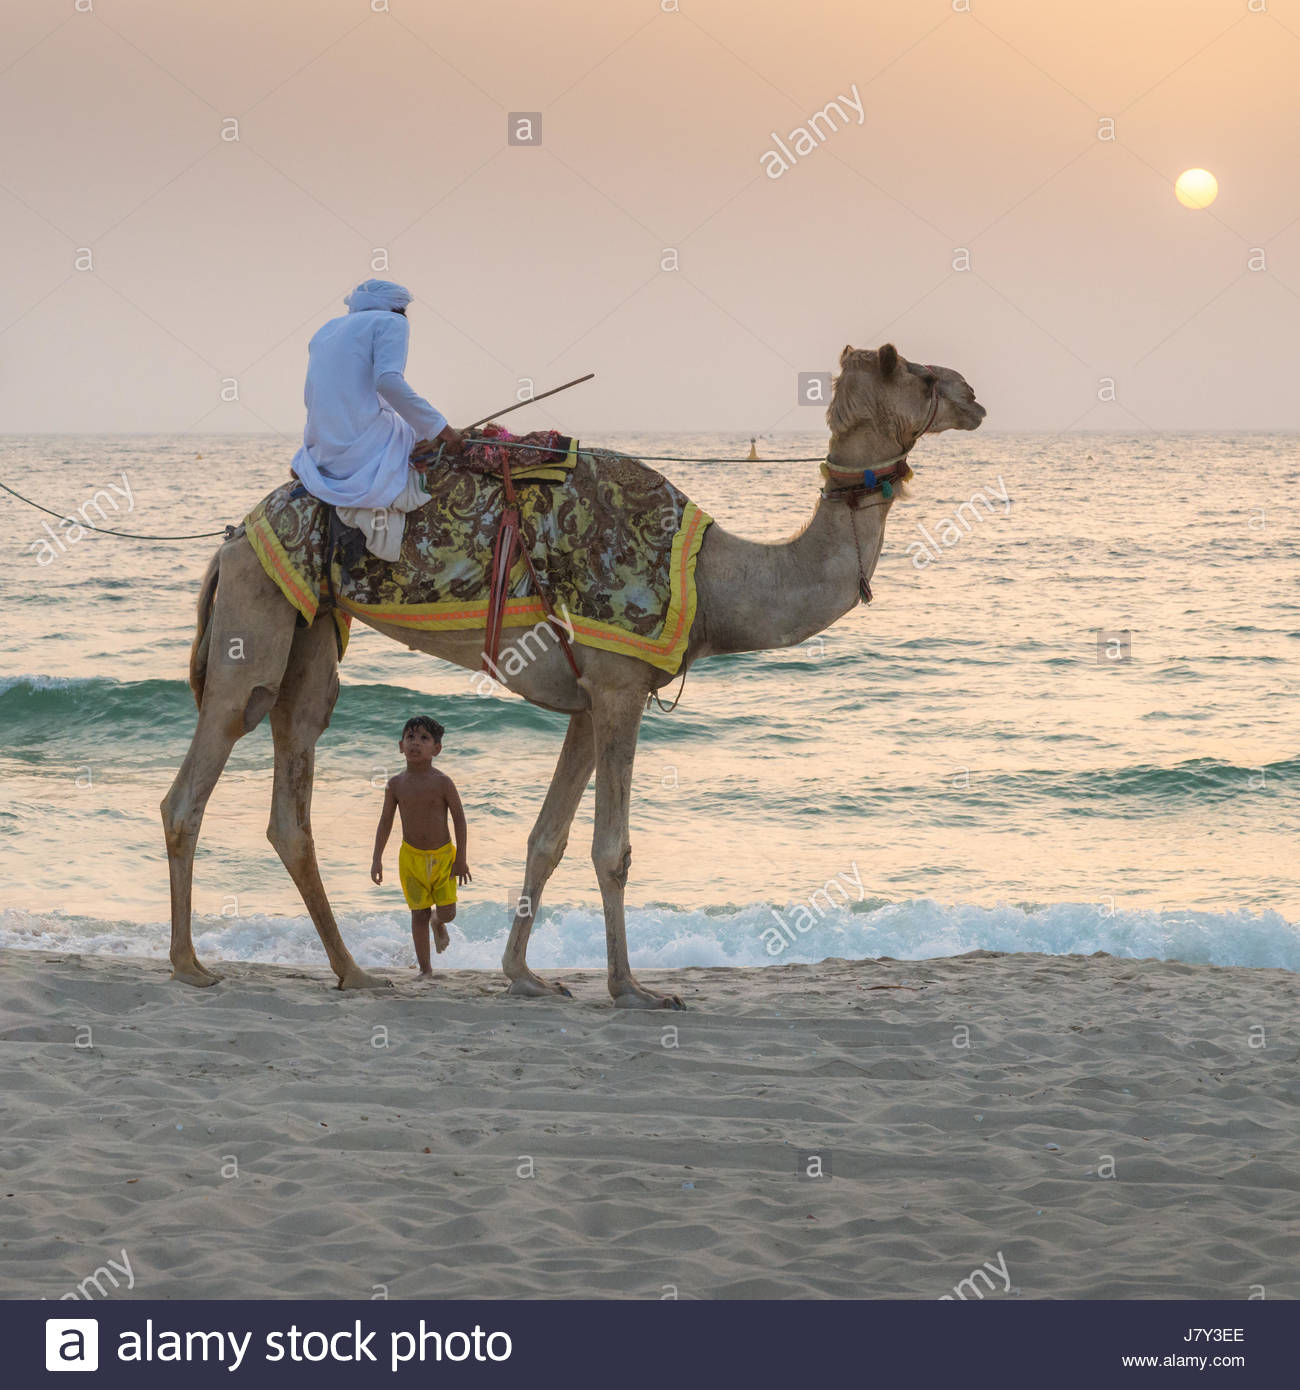 a-little-boy-stares-in-amazement-at-a-camel-riding-on-marina-beach-J7Y3EE.jpg